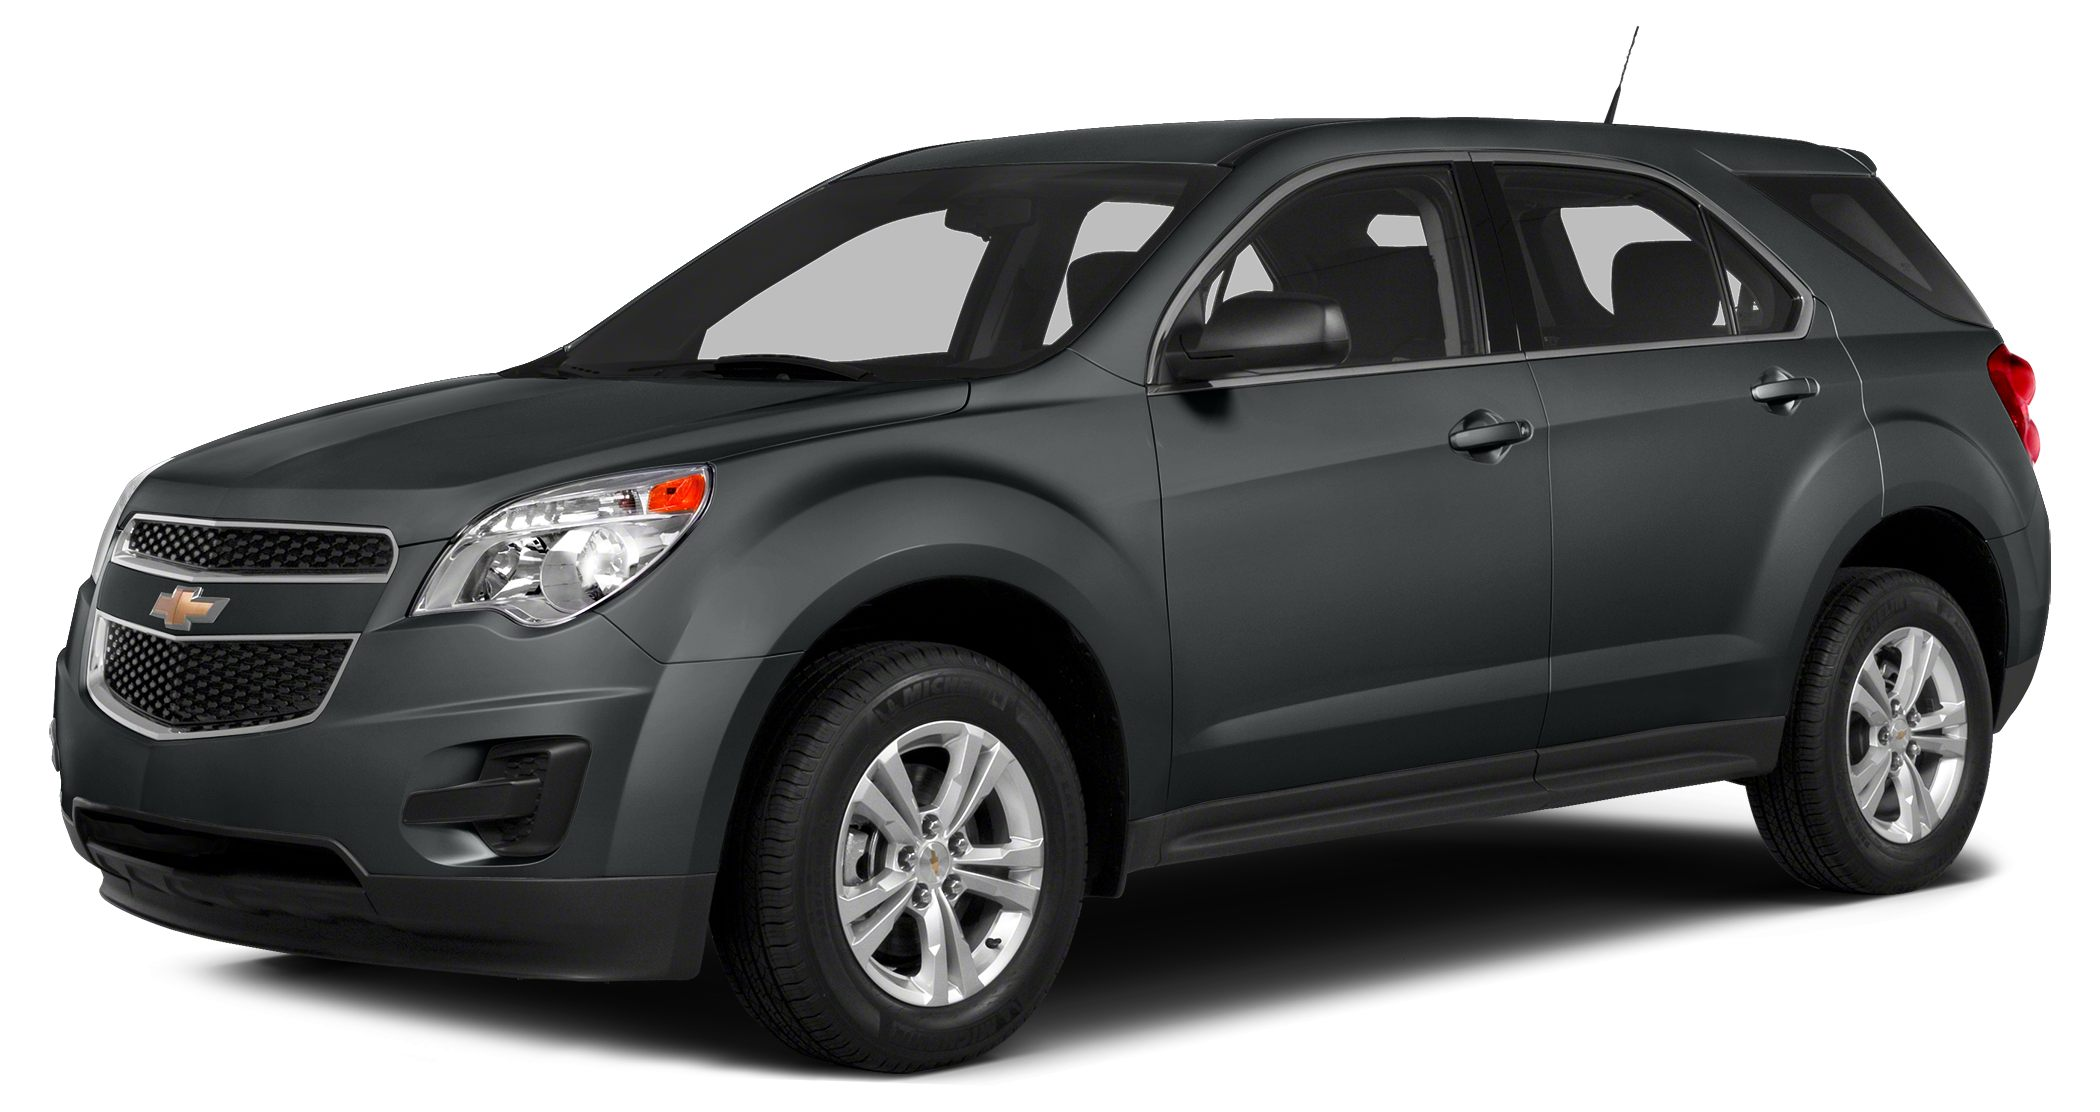 2014 Chevrolet Equinox LS Land a score on this 2014 Chevrolet Equinox LS before its too late Com